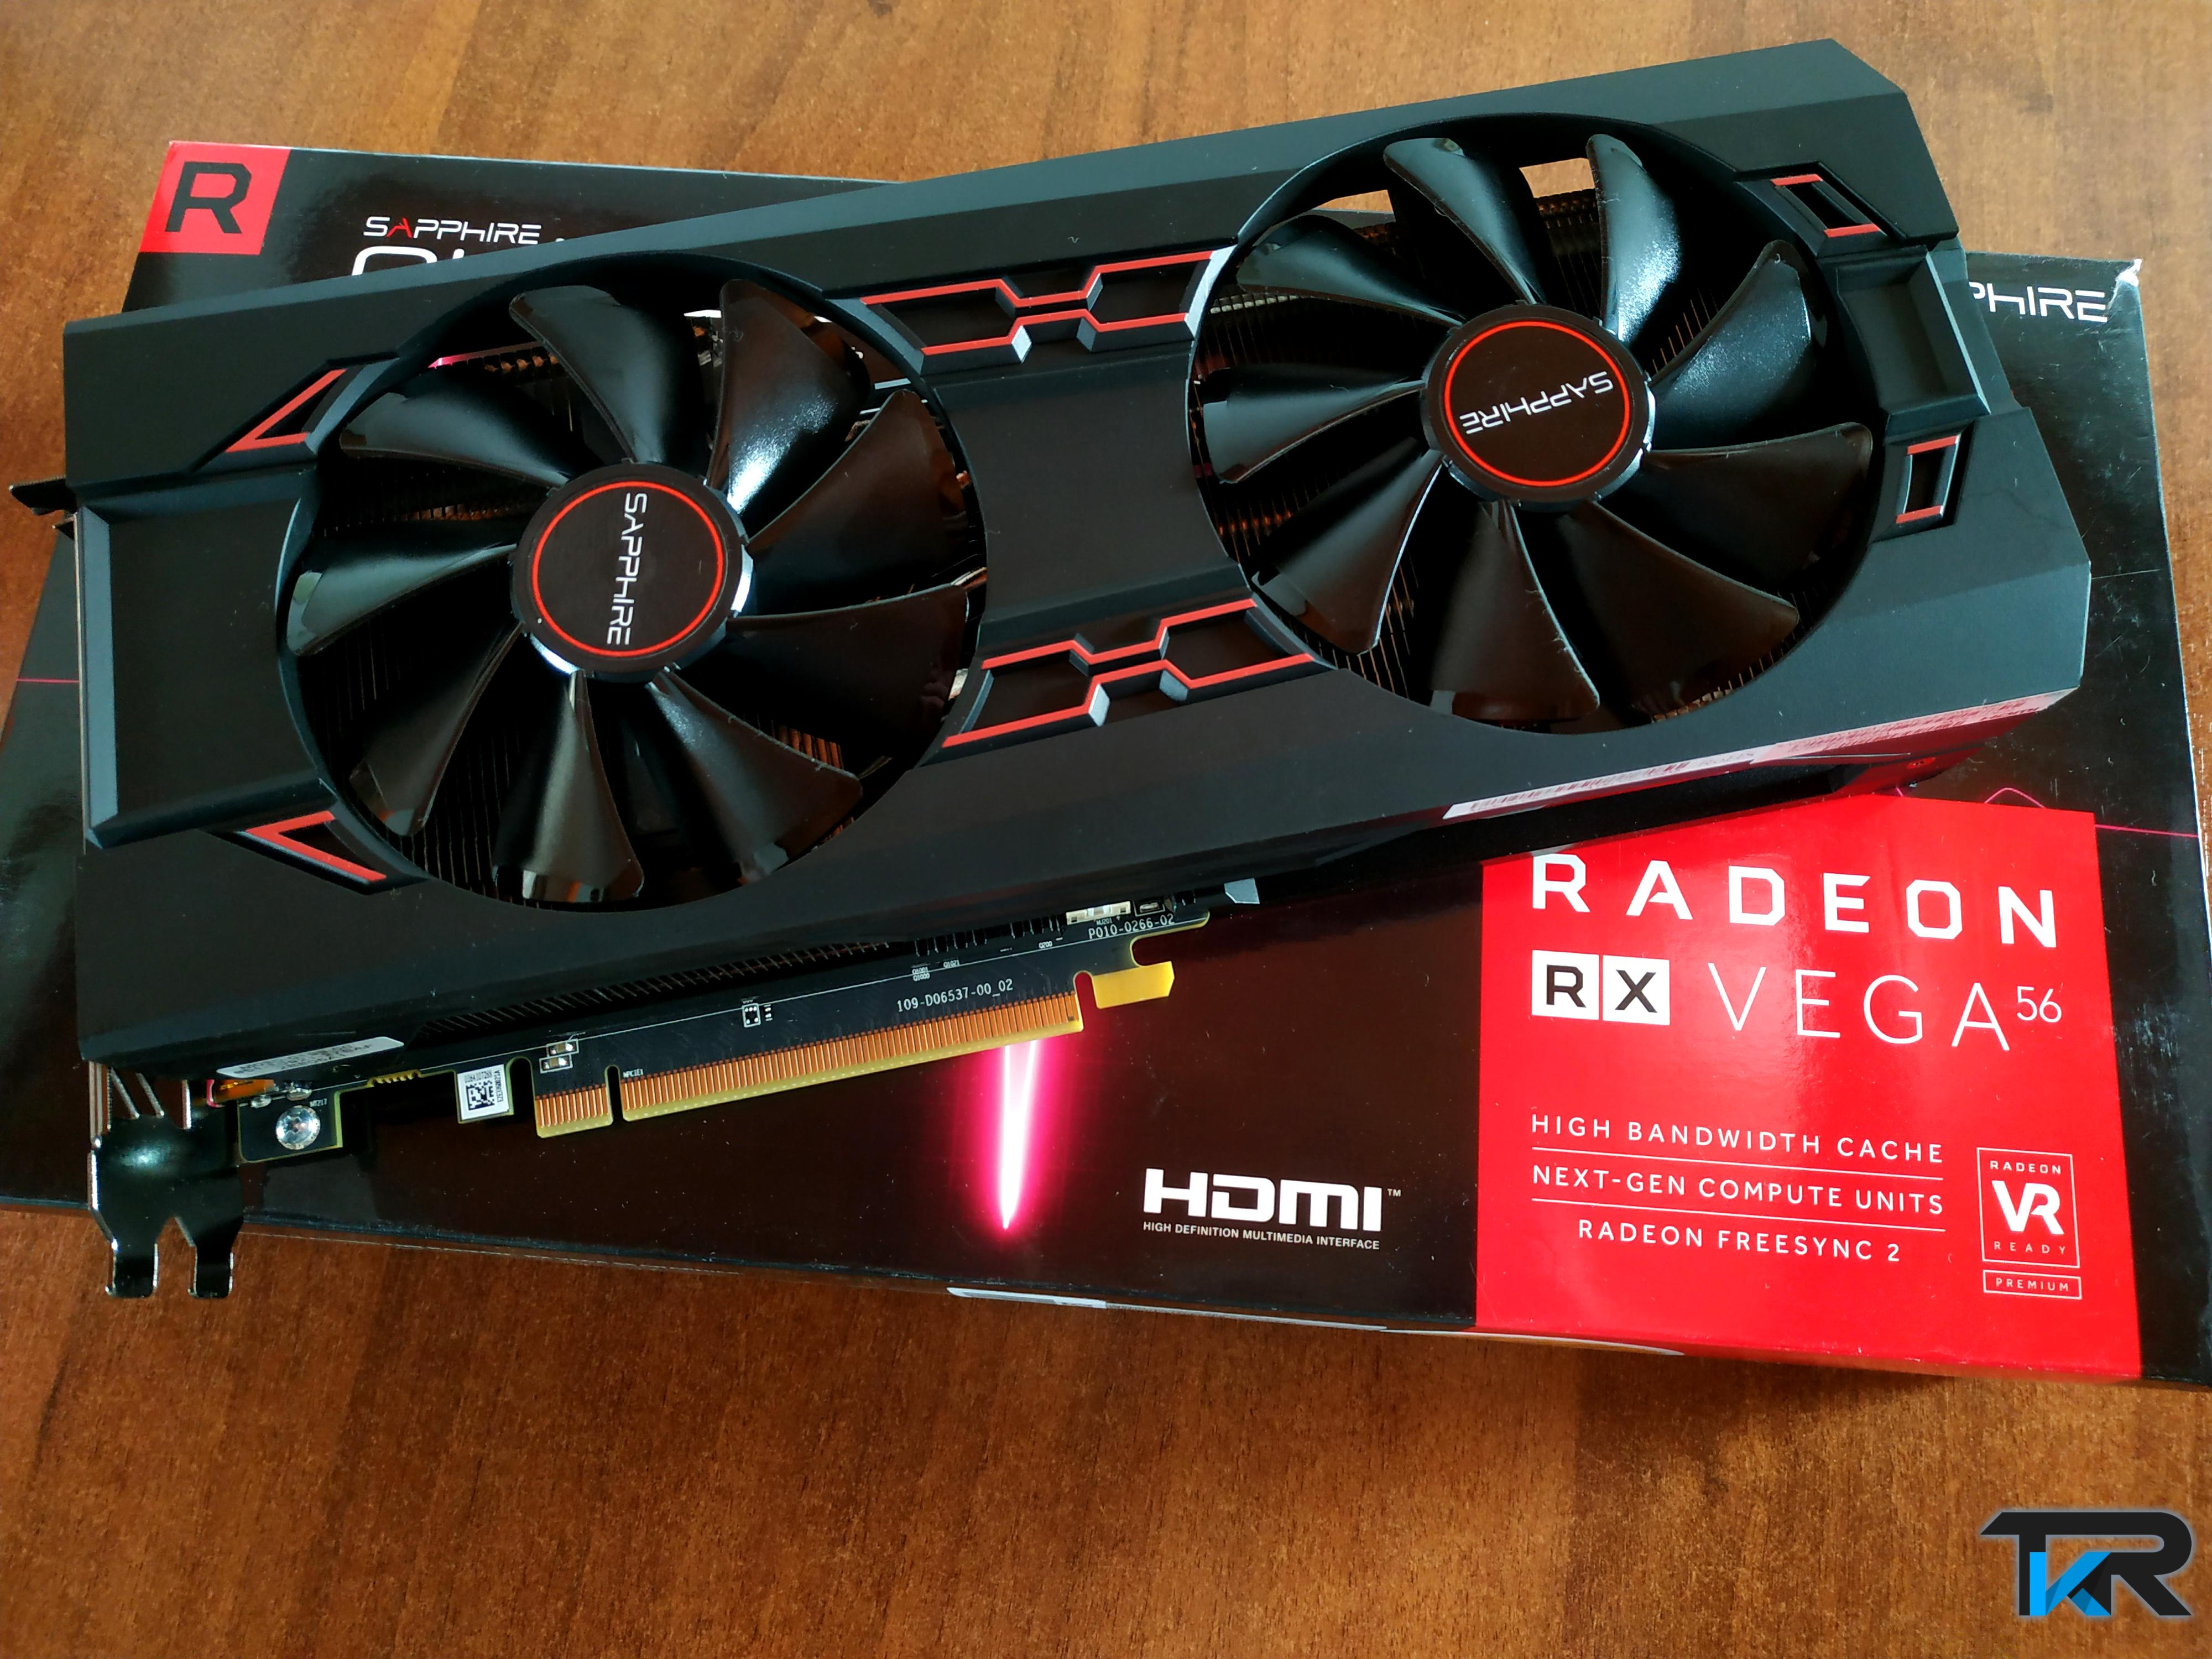 Sapphire Rx Vega 56 Pulse Review in 2019 & Bios Flash